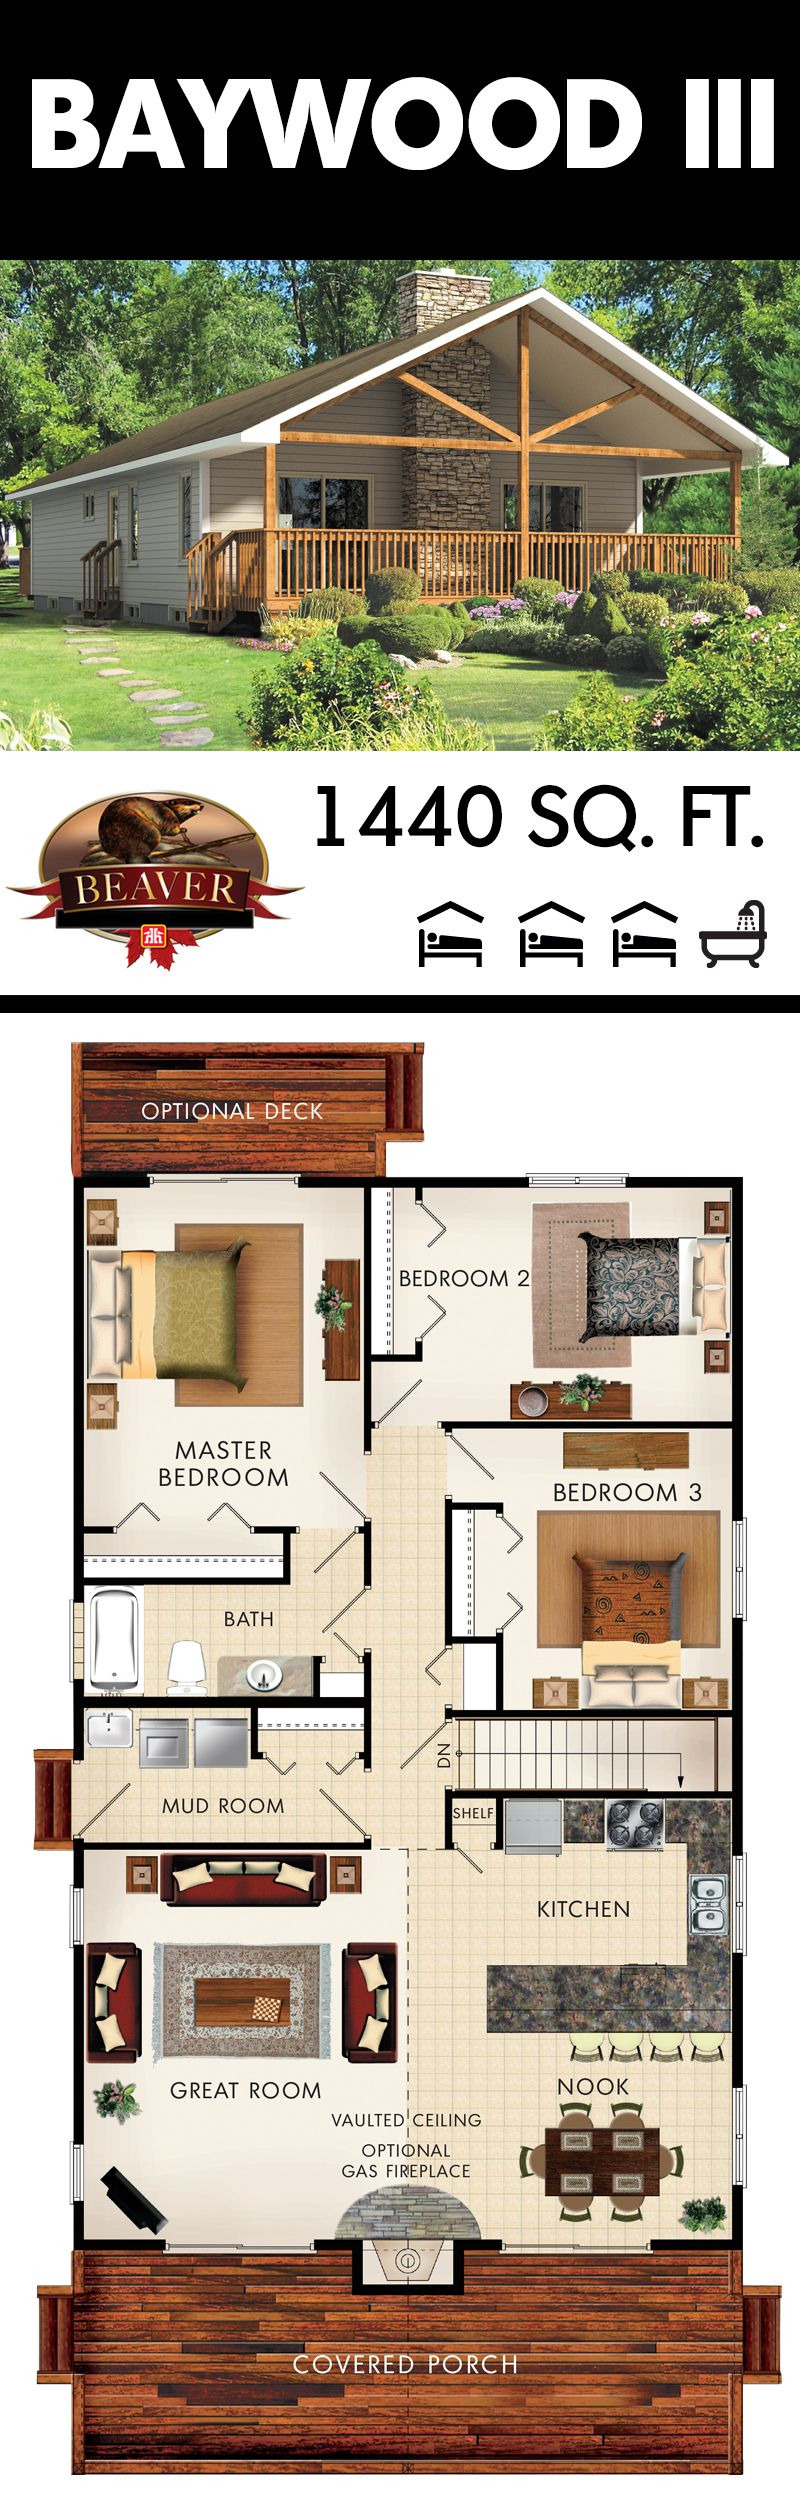 Cost Effective Home Plans Fresh the Baywood Iii is Designed to Be Very Cost Effective and